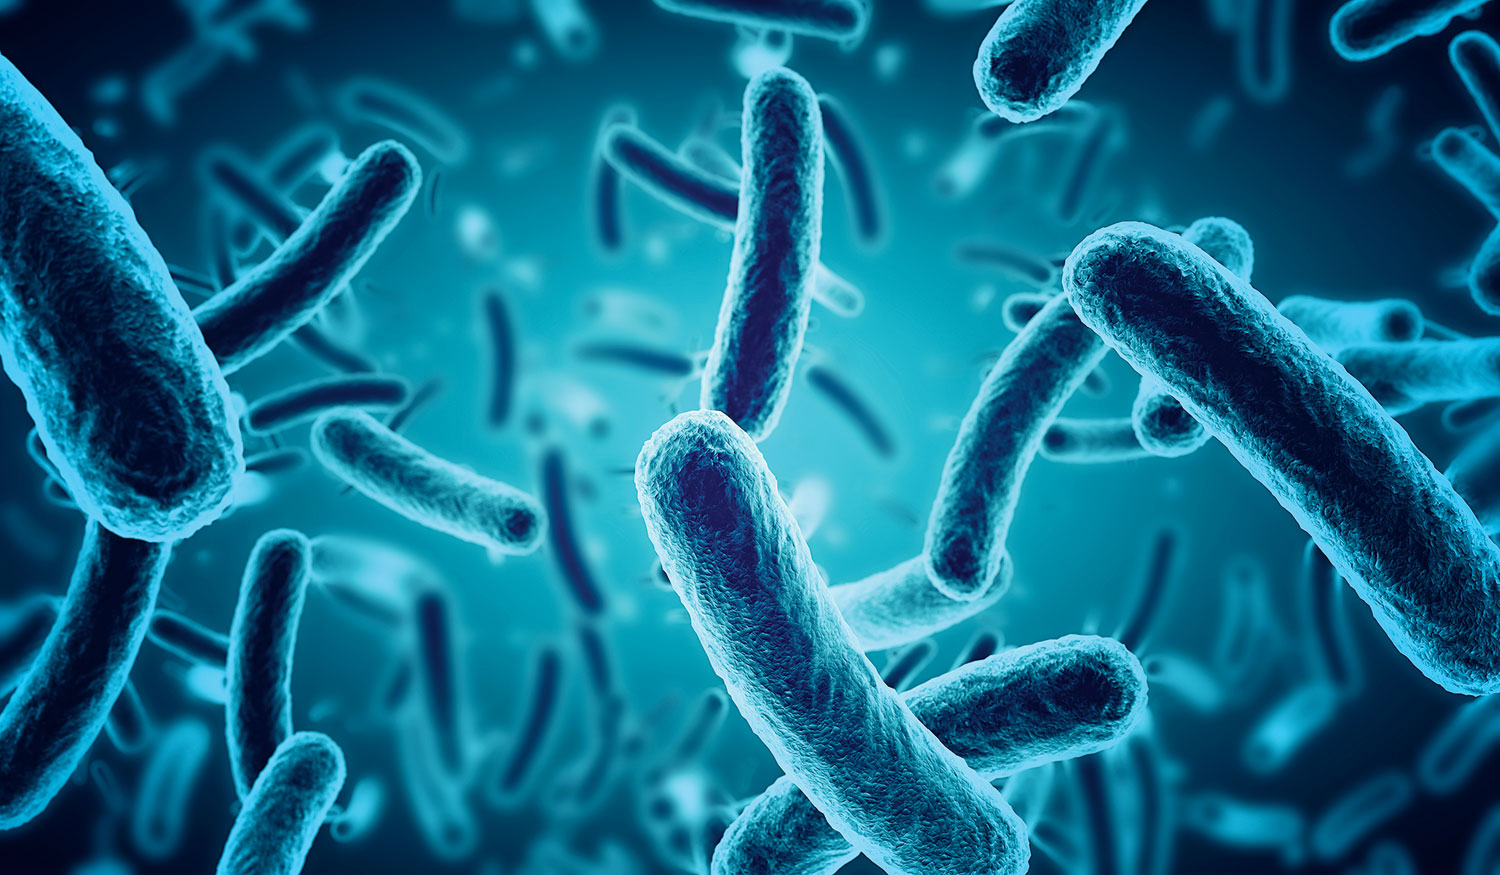 Many companies today use genetically engineered  microbes to make medicines like insulin or useful chemicals like detergent enzymes